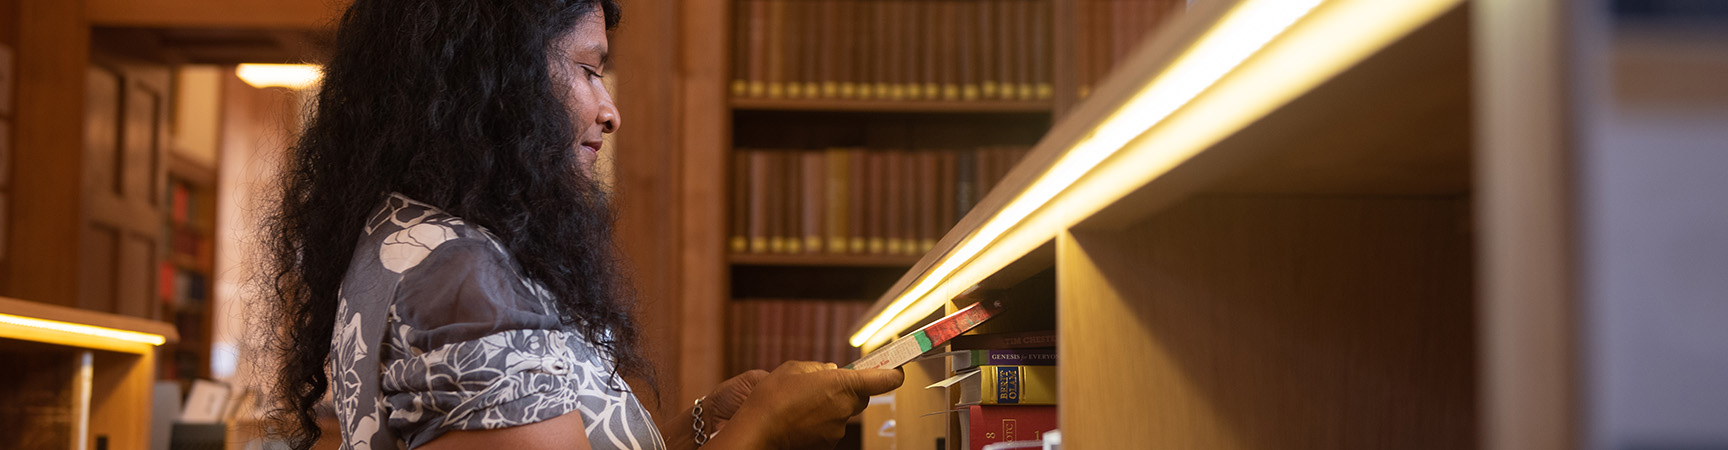 A student retrieves a book from a shelve